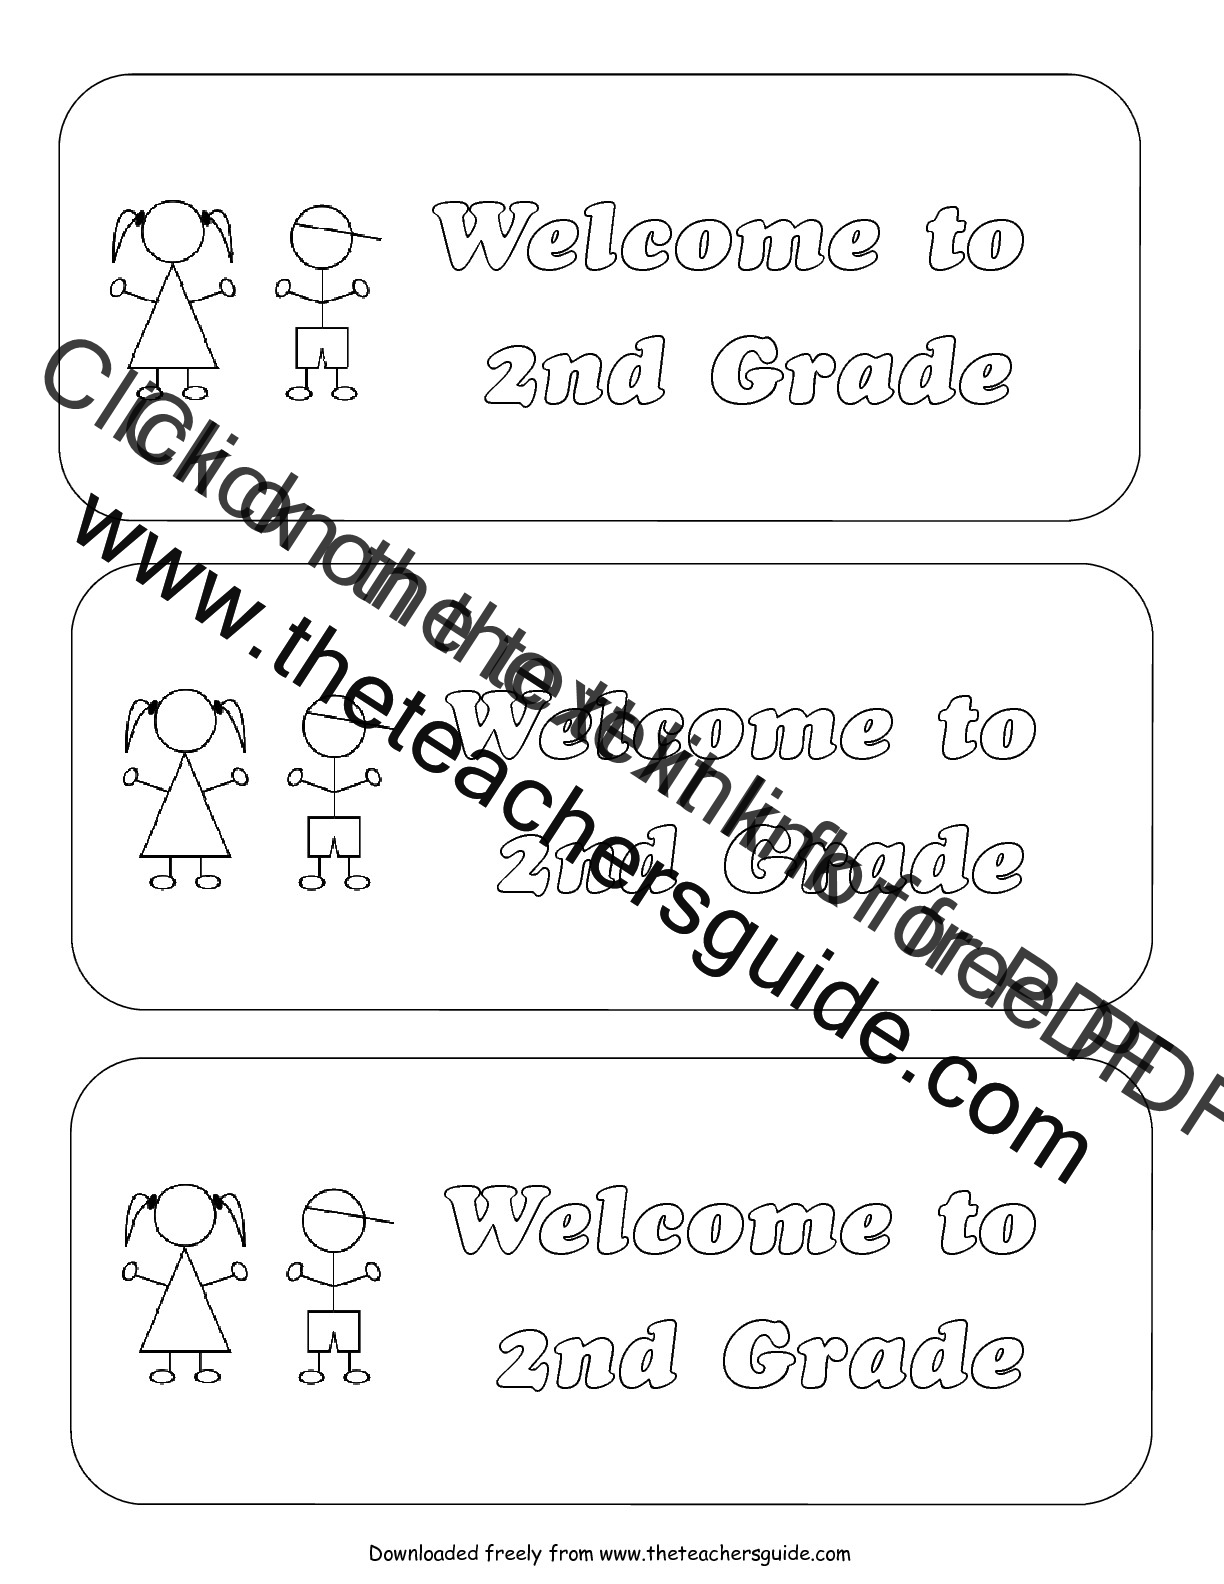 School Worksheets For 2nd Grade : Back to school worksheets for second graders